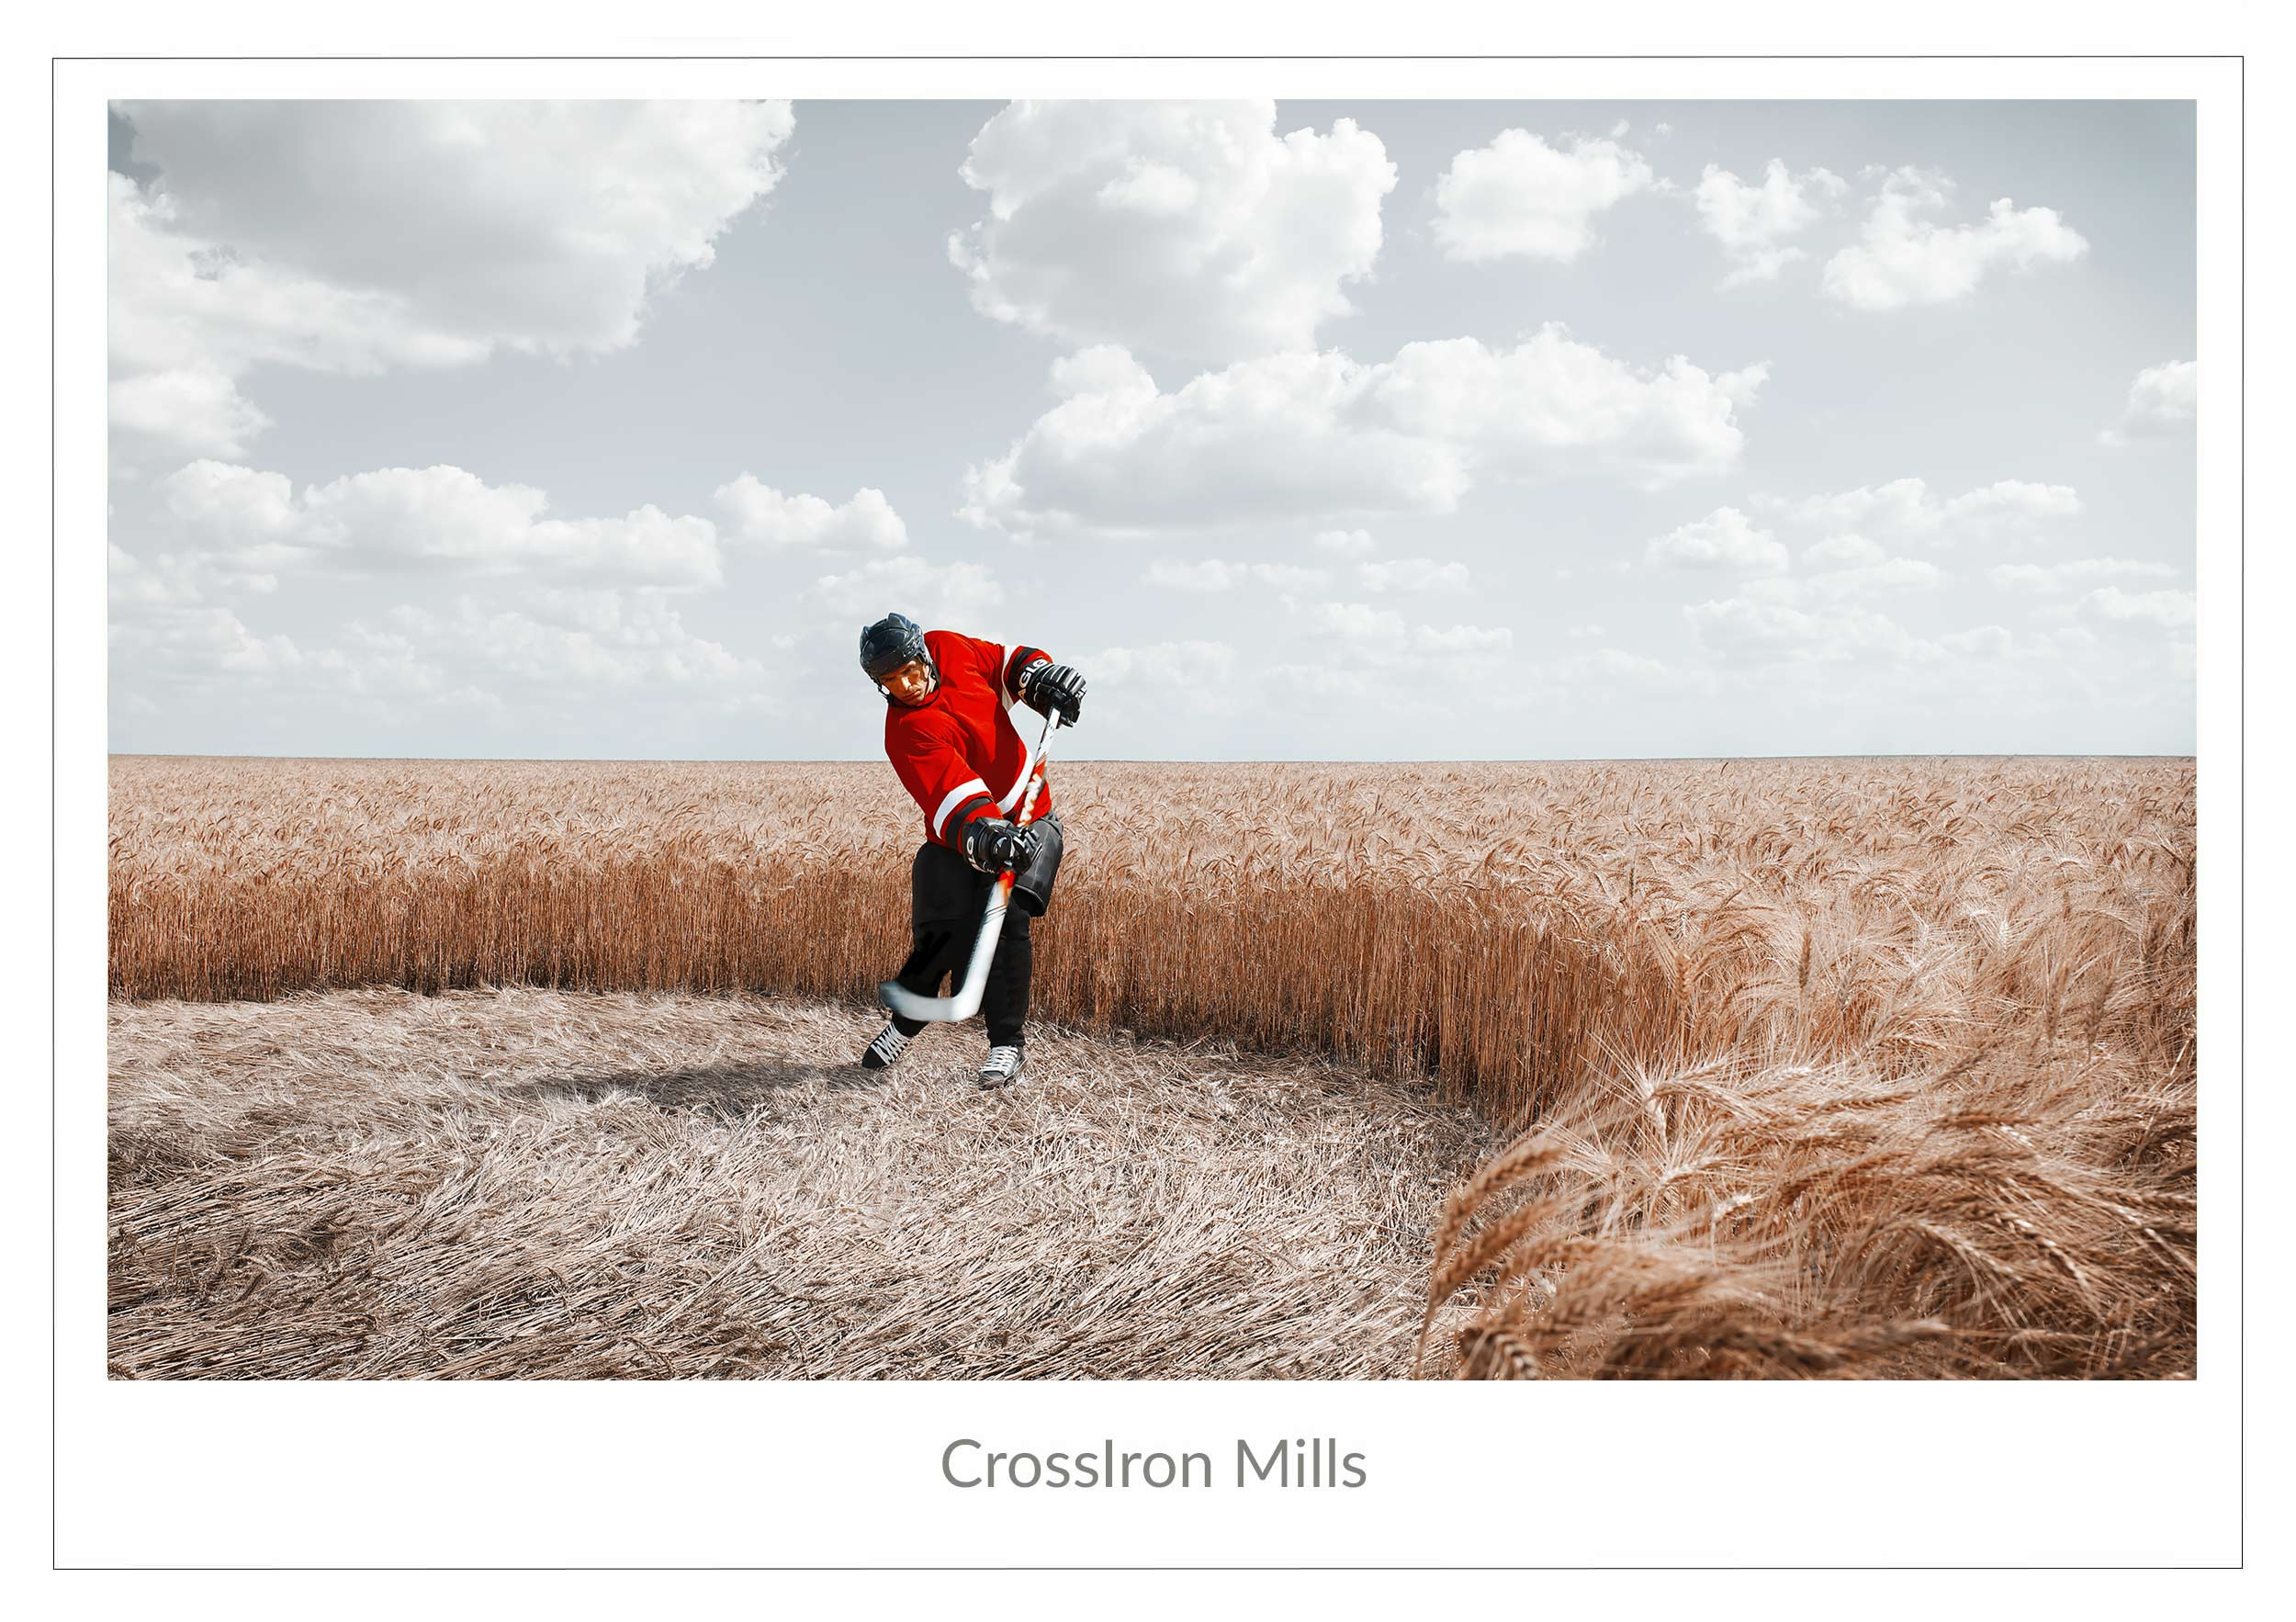 Hockey player wearing a red jersey and playing hockey in the middle of a wheat field in Texas